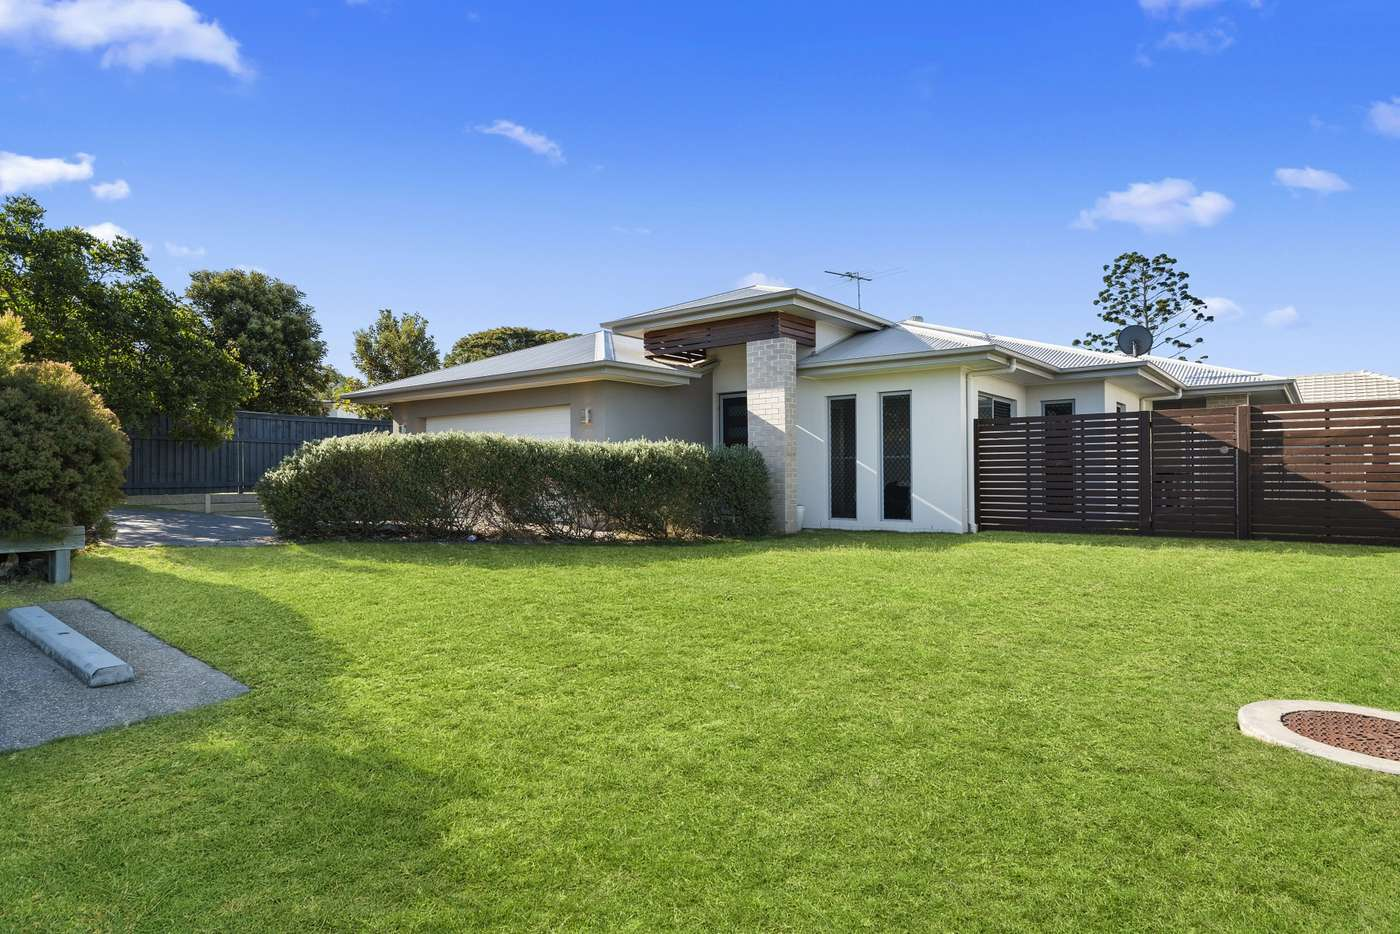 Main view of Homely house listing, 49 Kinsellas Road West, Mango Hill, QLD 4509